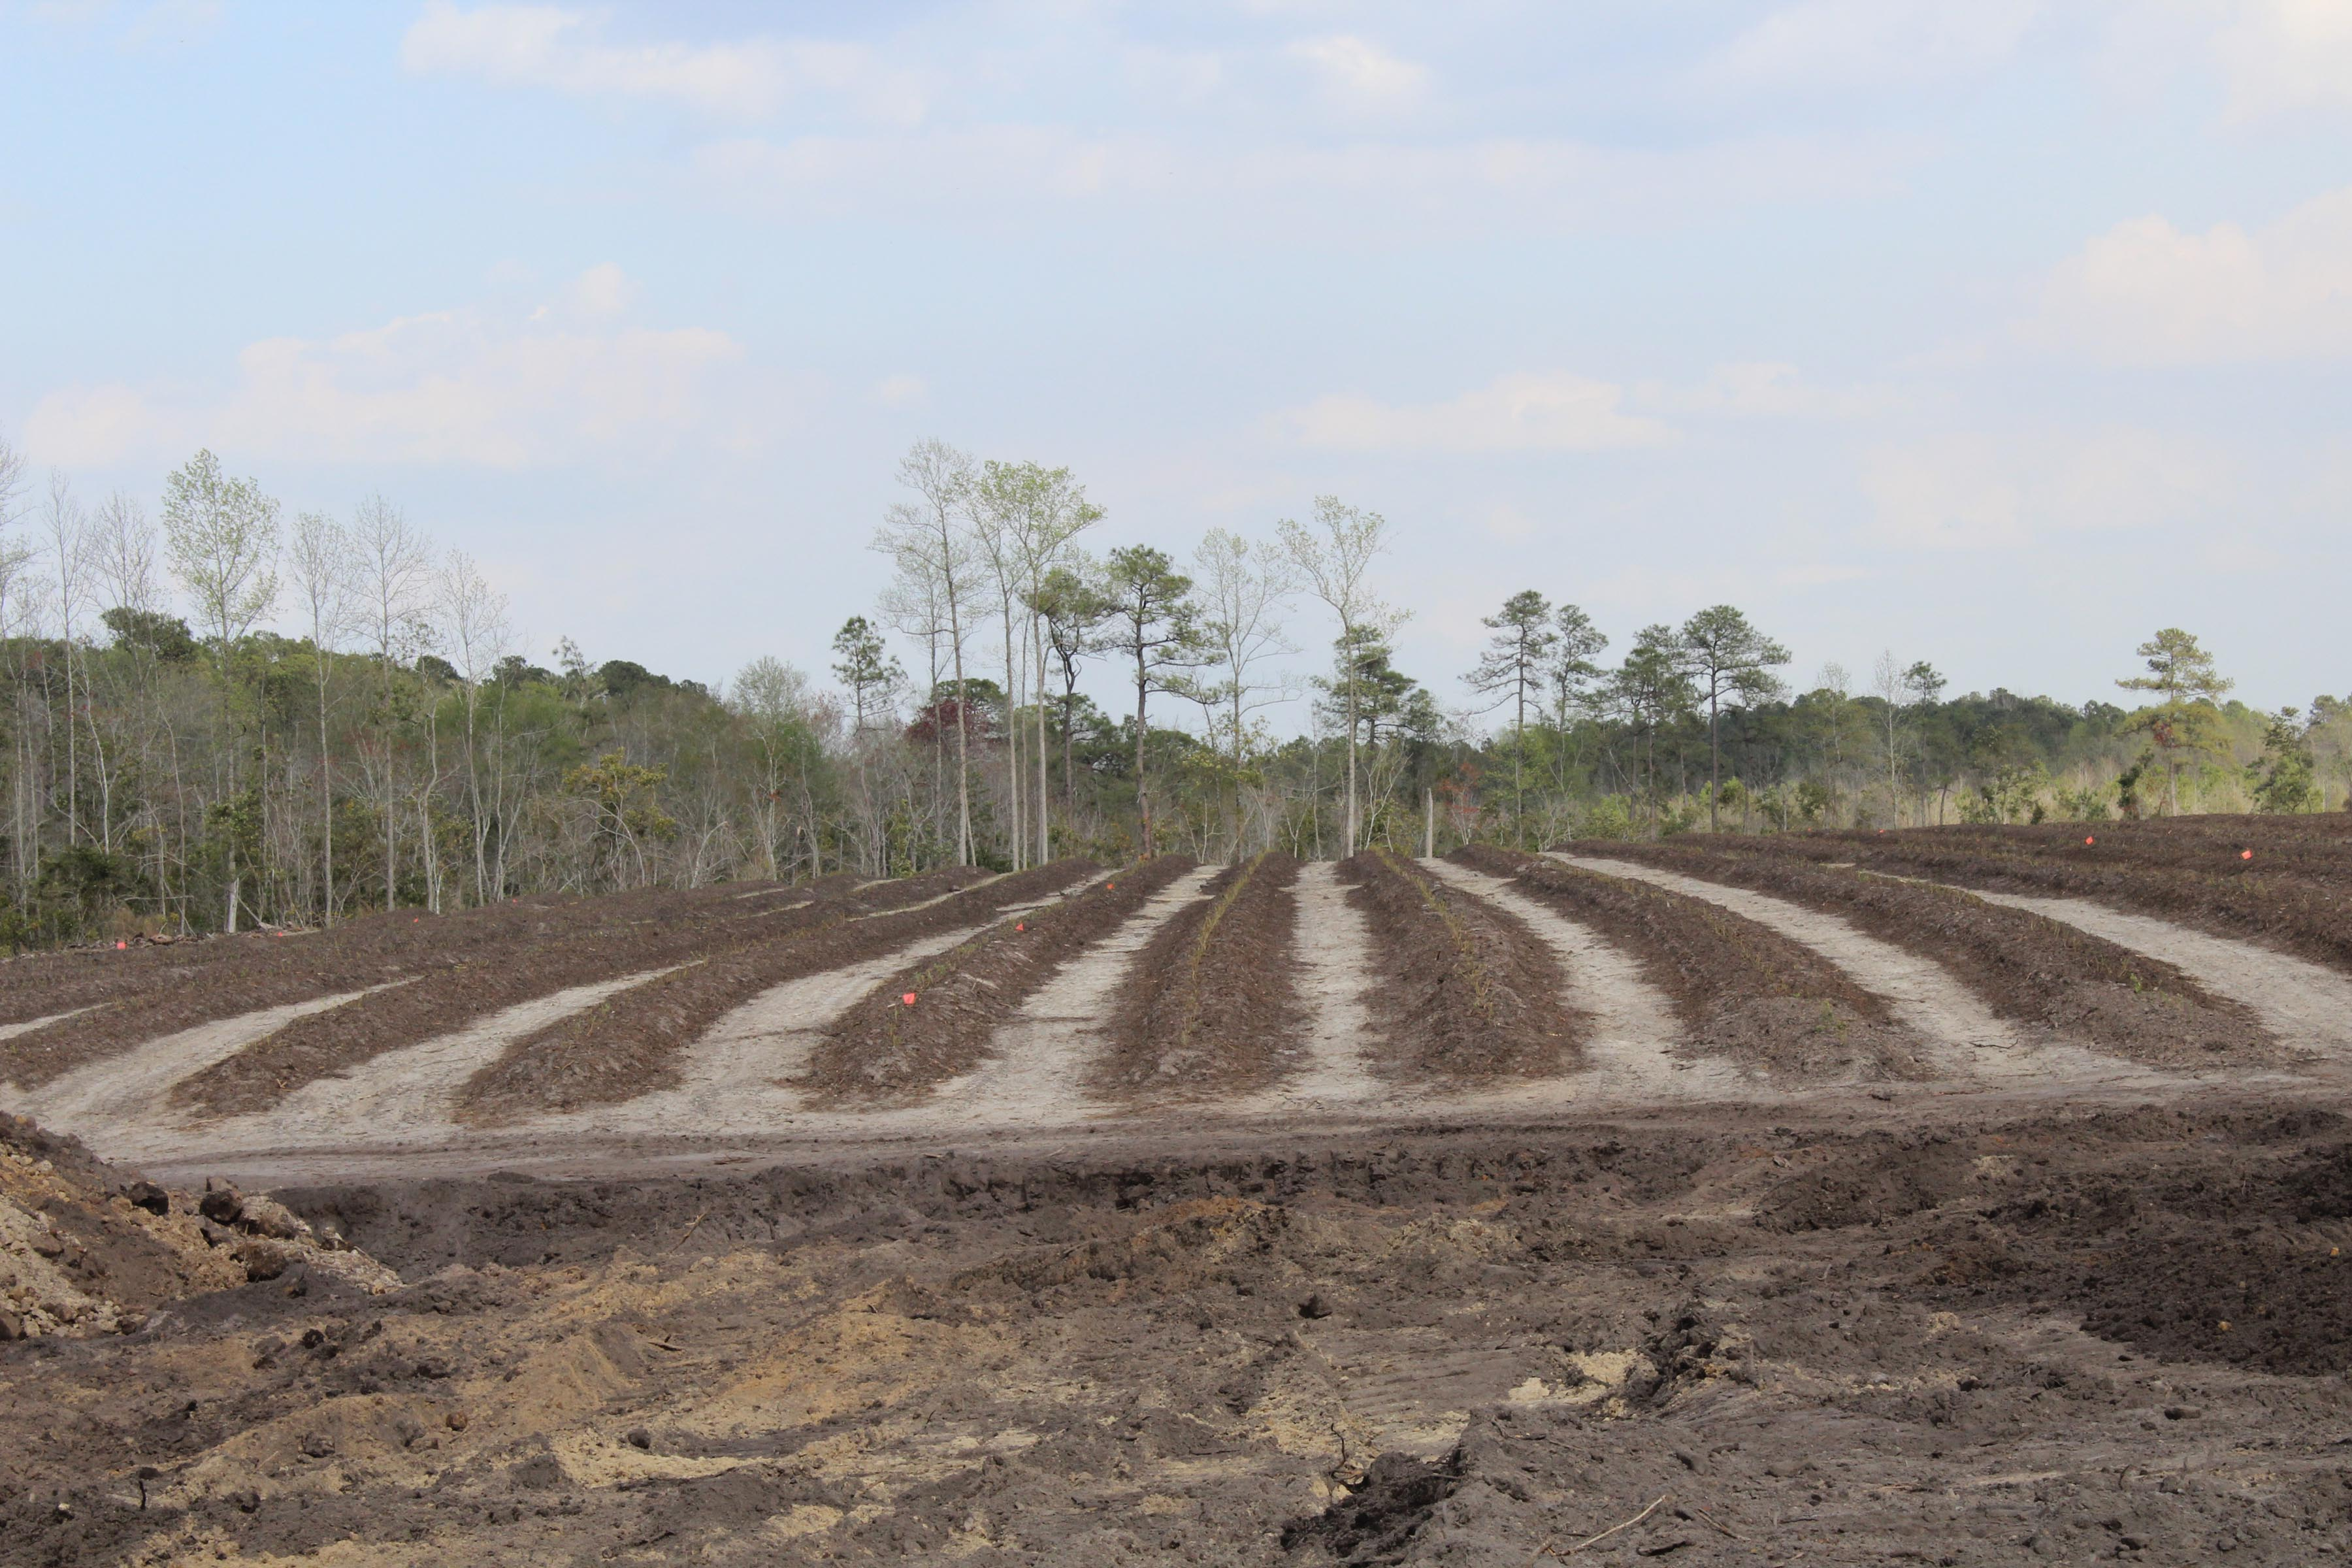 New rows of Blueberry plants